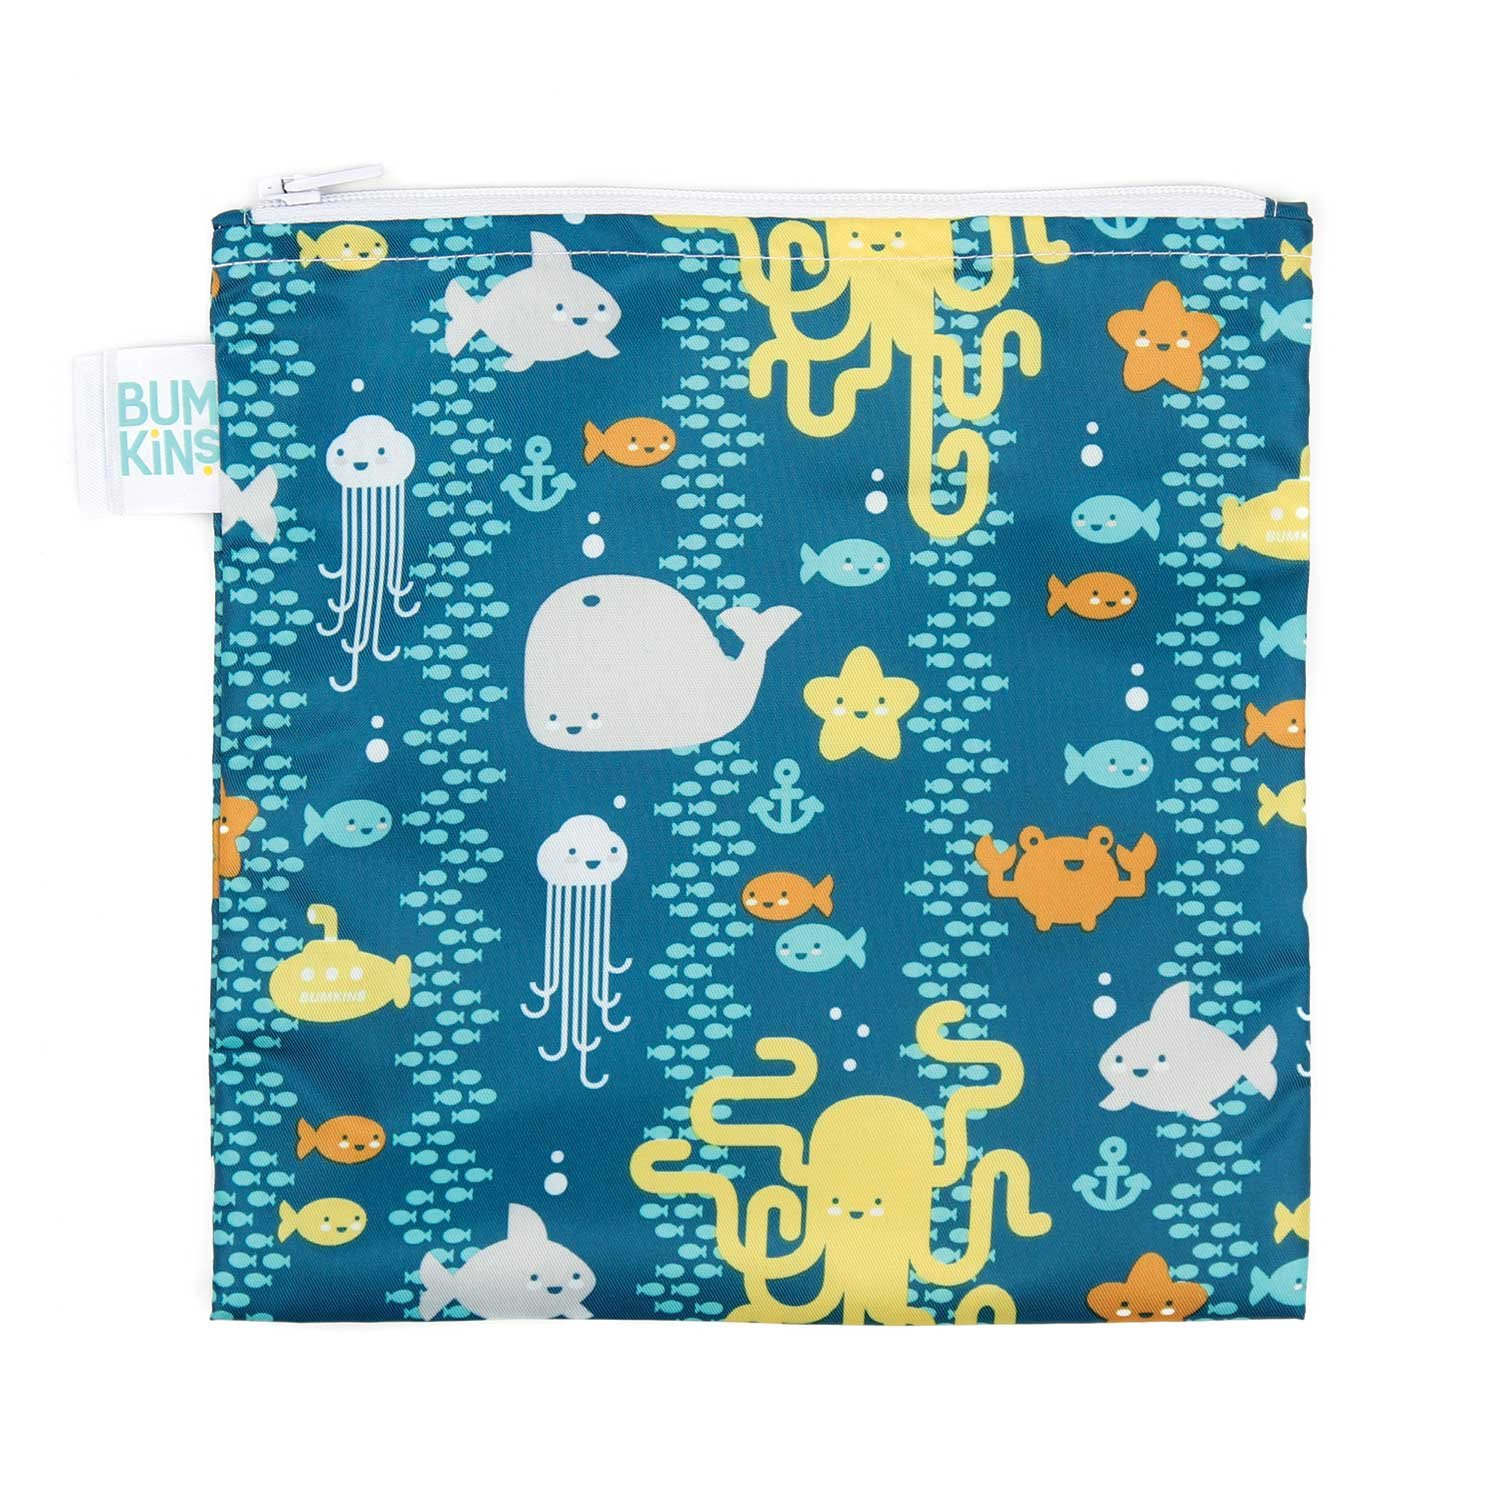 Bumkins Reusable Snack Bag Large, Raindrops SBL-167